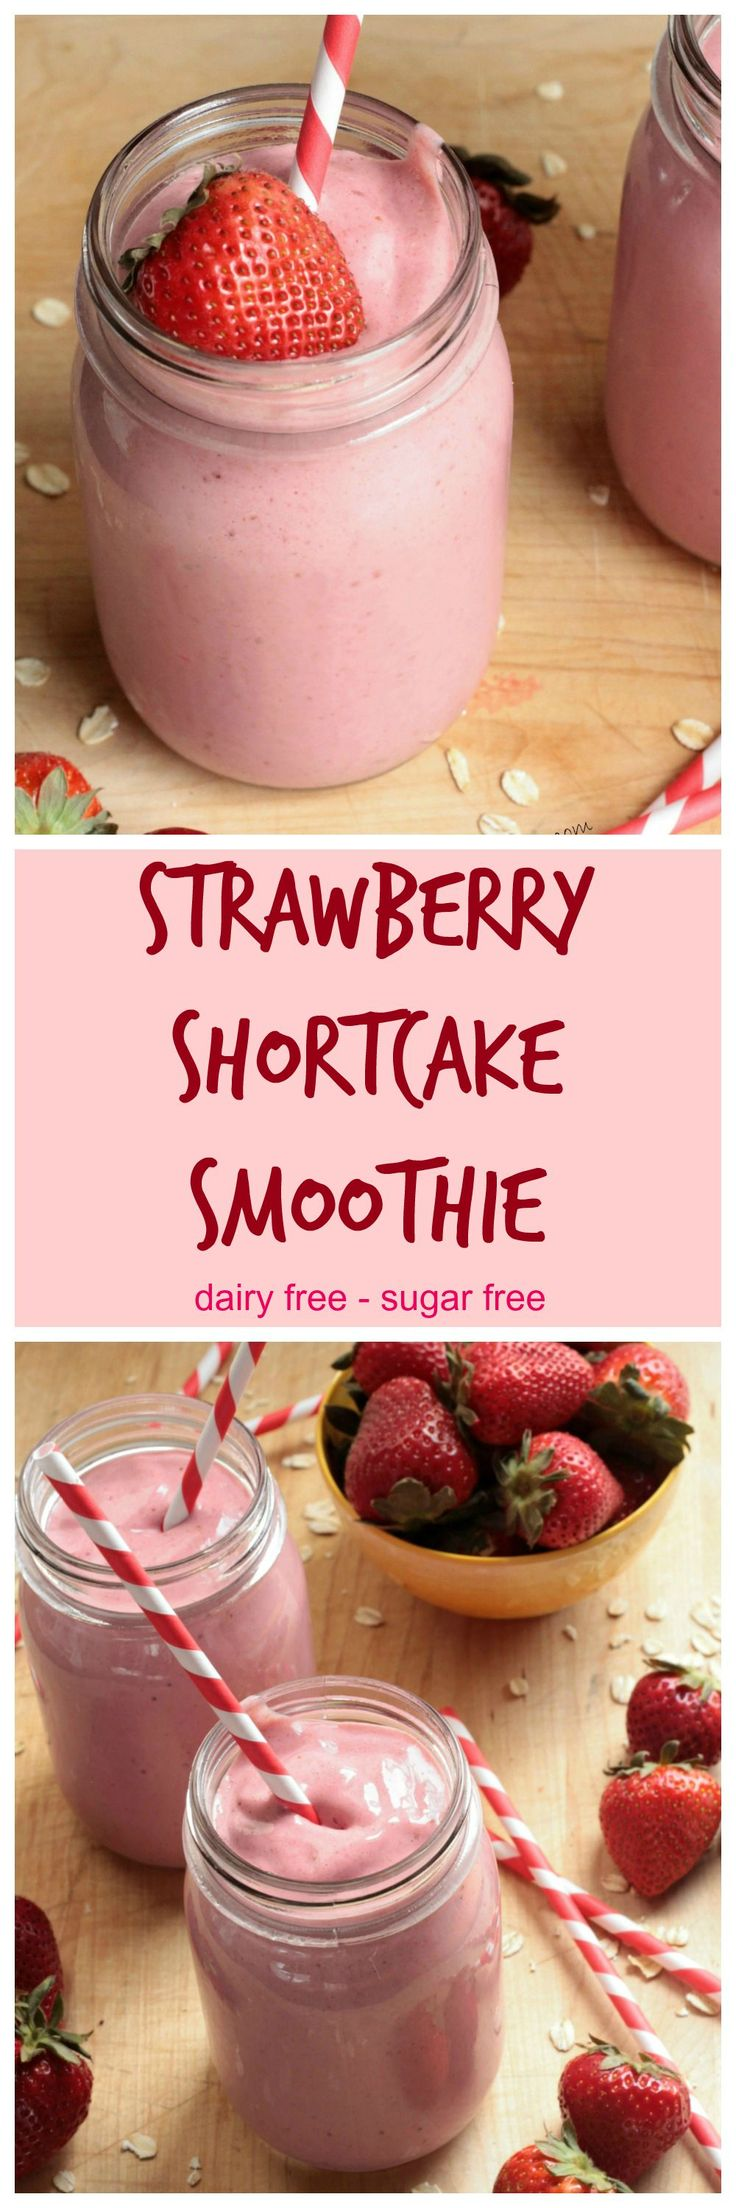 Healthy Strawberry Shortcake Smoothie - thick and sweet and delicious! #vegan #dairyfree #strawberryshortcake #smoothie #healthy #wfpb @sebestyen2